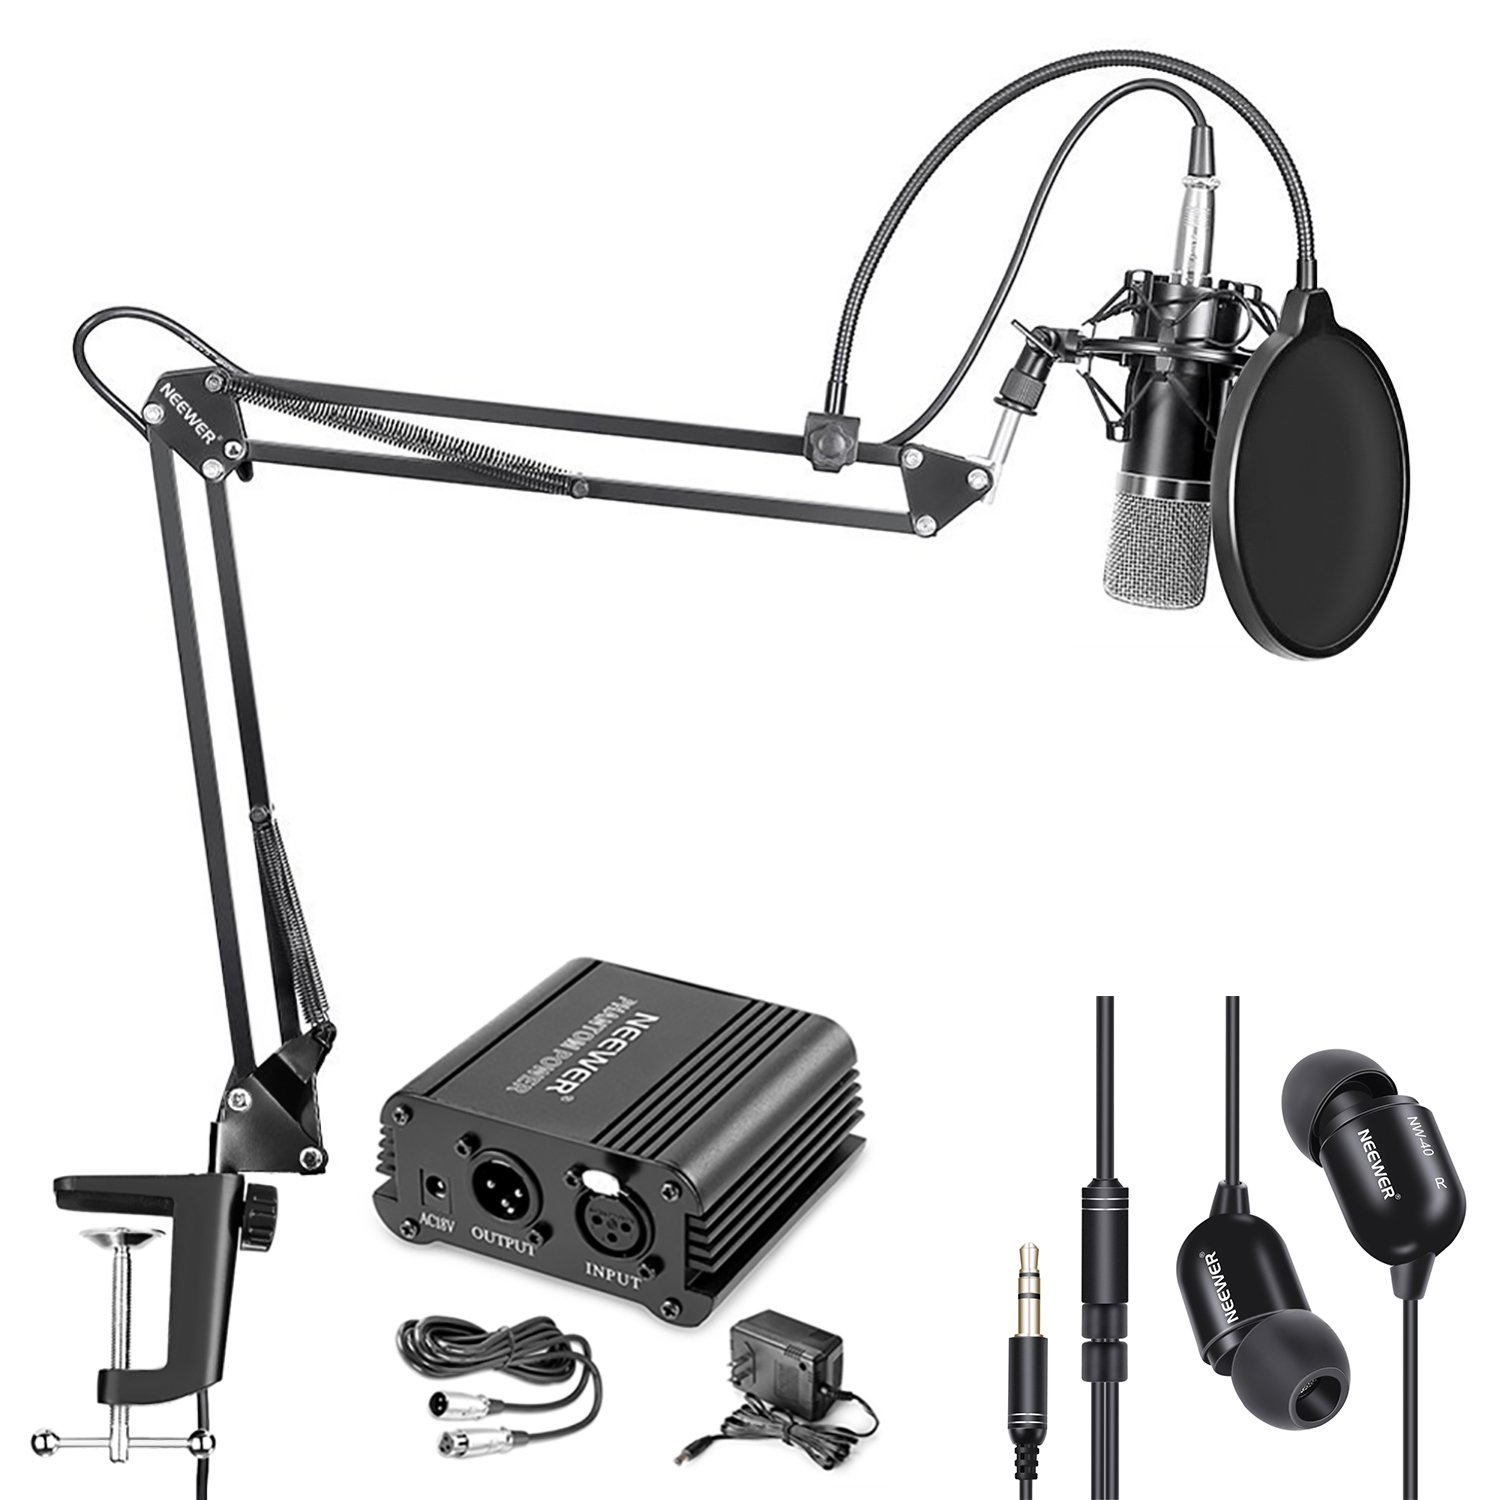 Neewer NW-700 Condenser Microphone and Monitor Earphone Kit Includes 48V Phantom Power Supply, NW-35 Boom Scissor Arm Stand, Shock Mount and Pop Filter for Home Studio Sound Recording(Black)